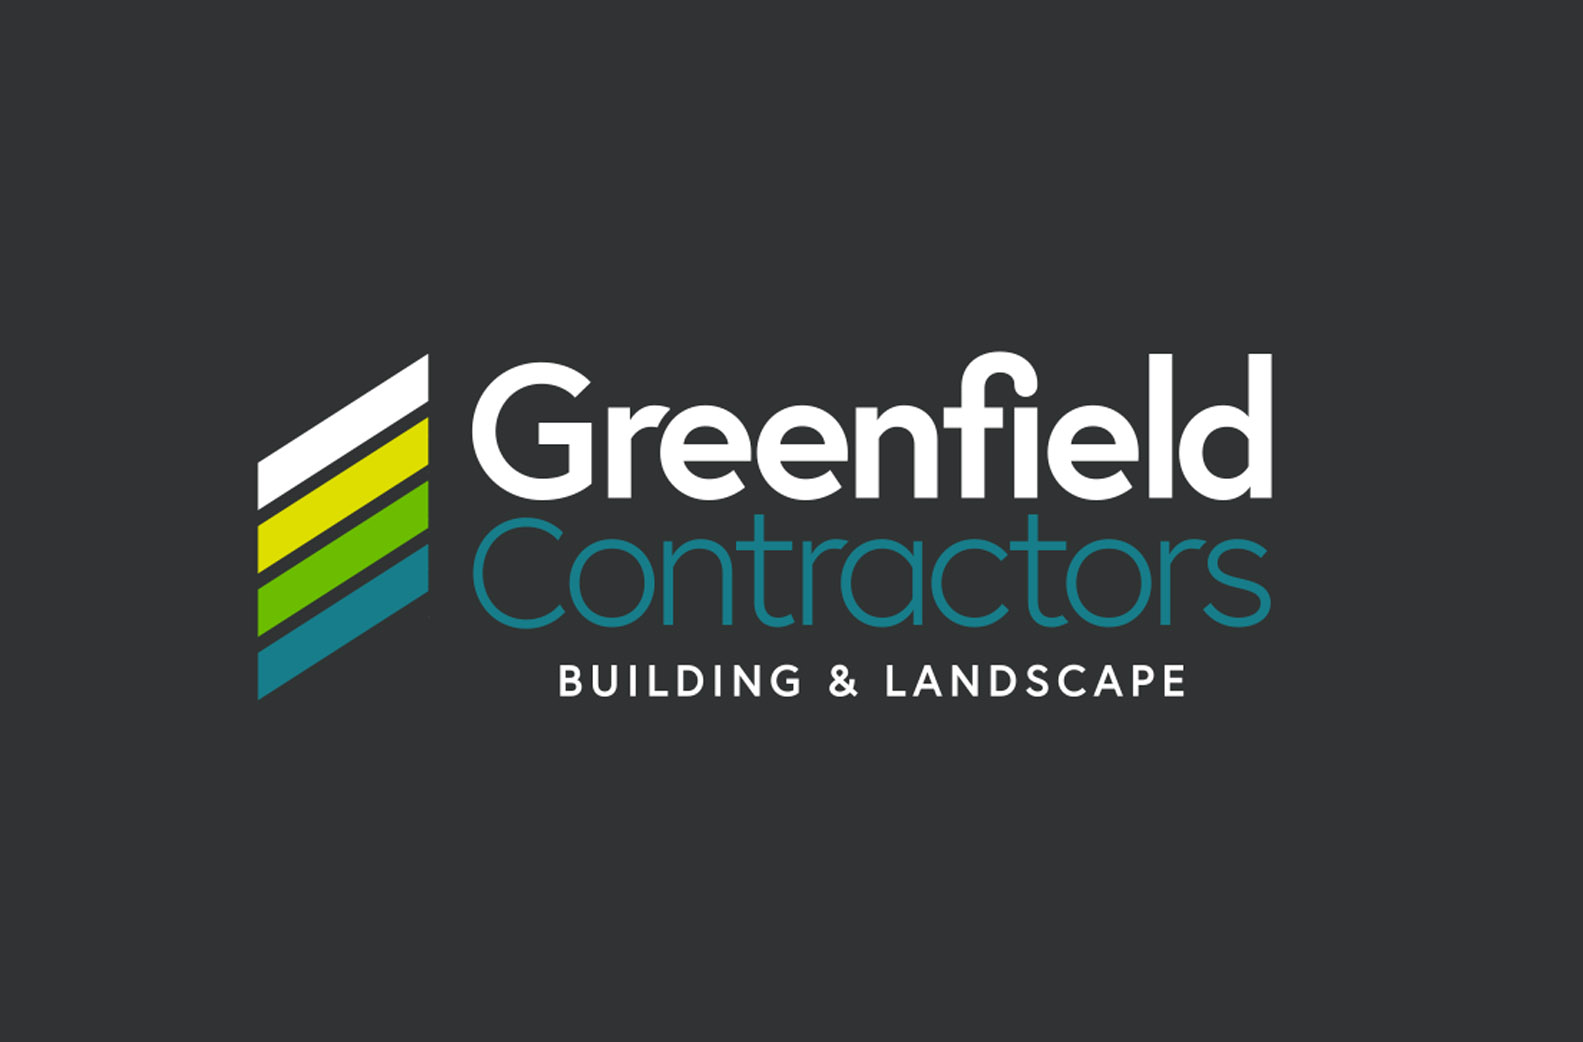 logo design for building & landscaper in Cardiff